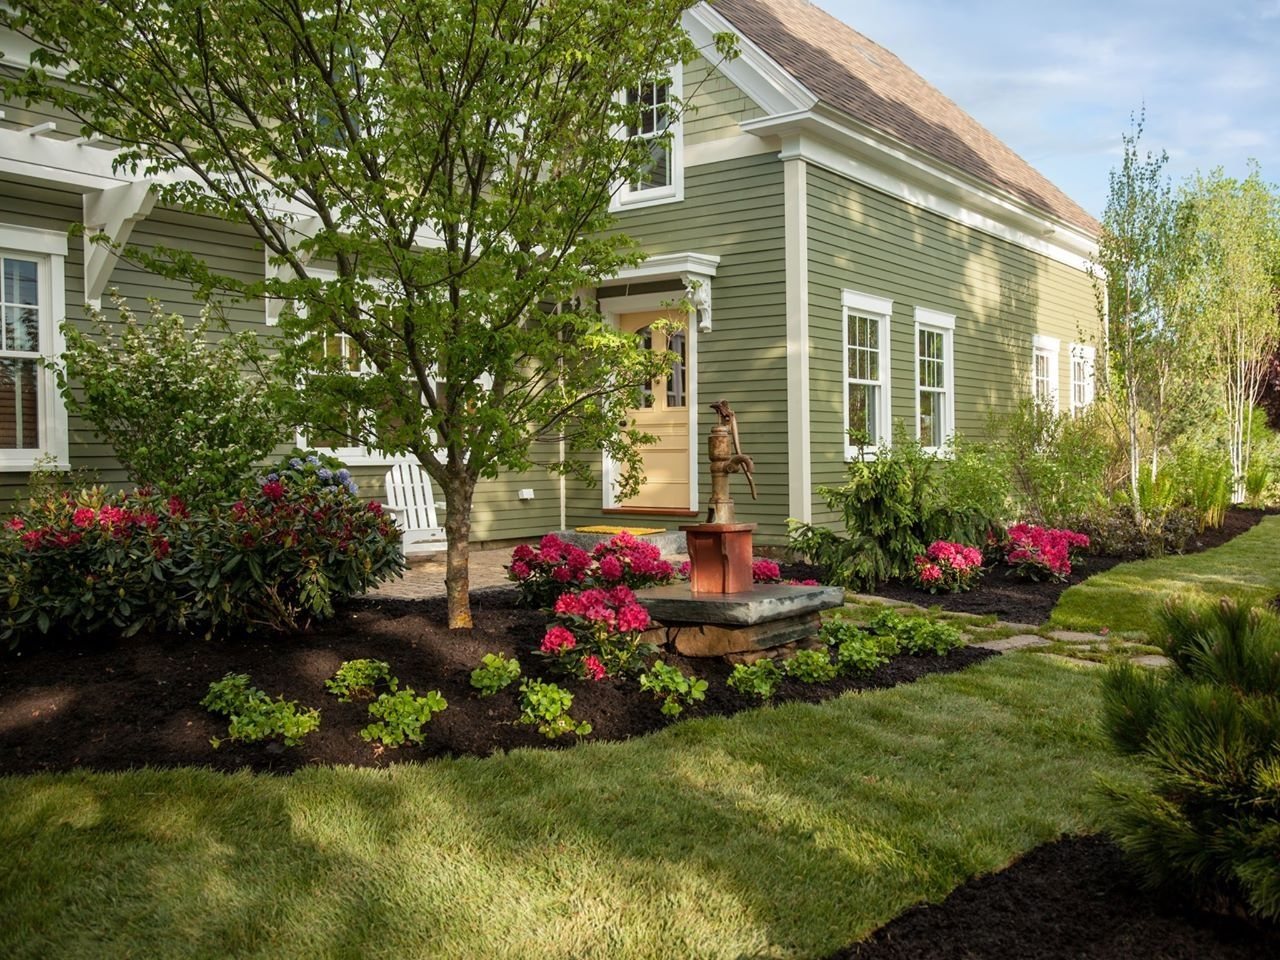 Landscaping ideas for front yard in new england bathroom for New landscaping ideas